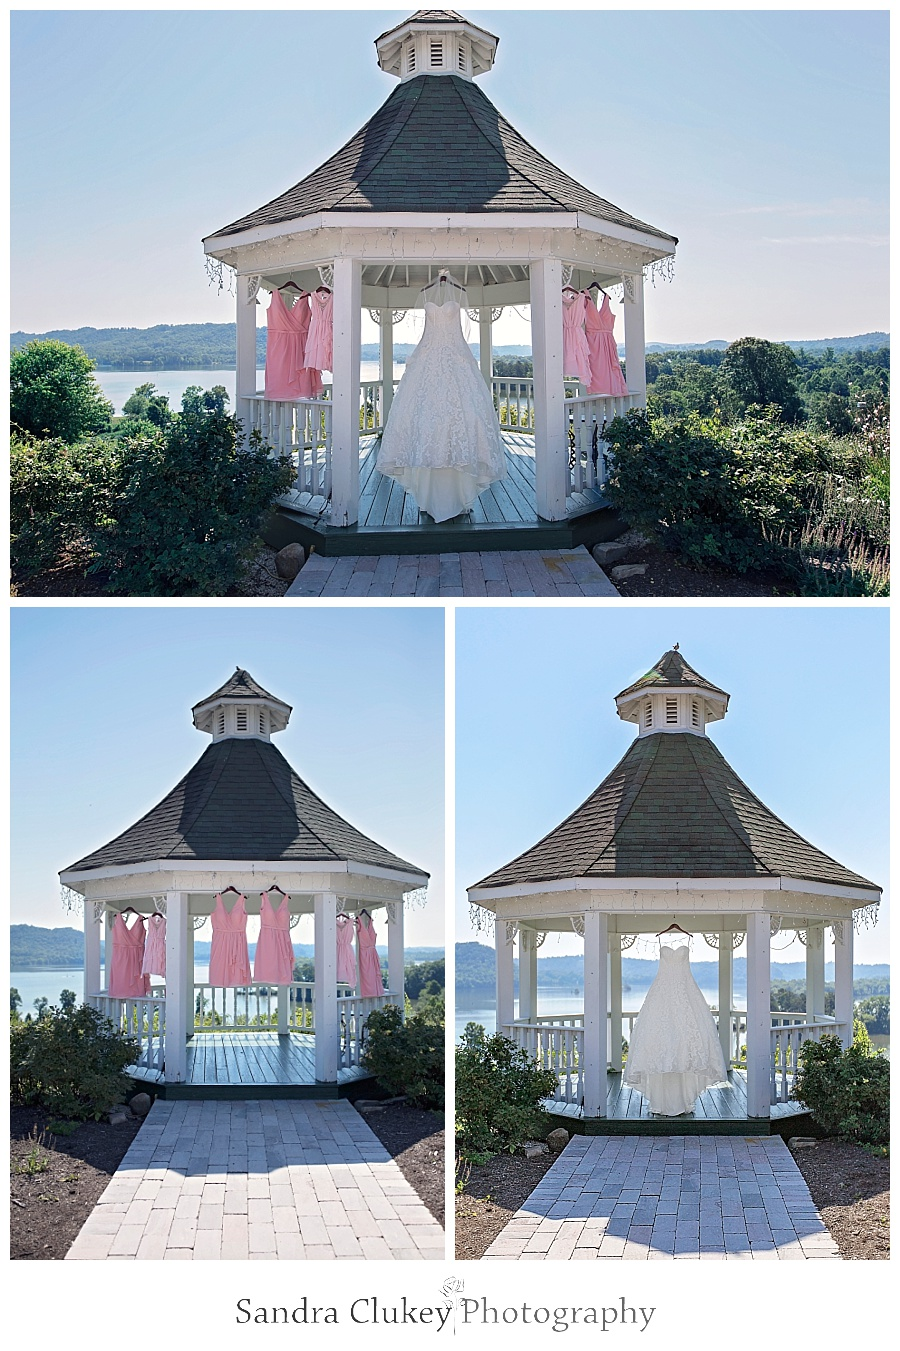 Wedding and Bridesmaid Gowns in Whitestone Gazebo